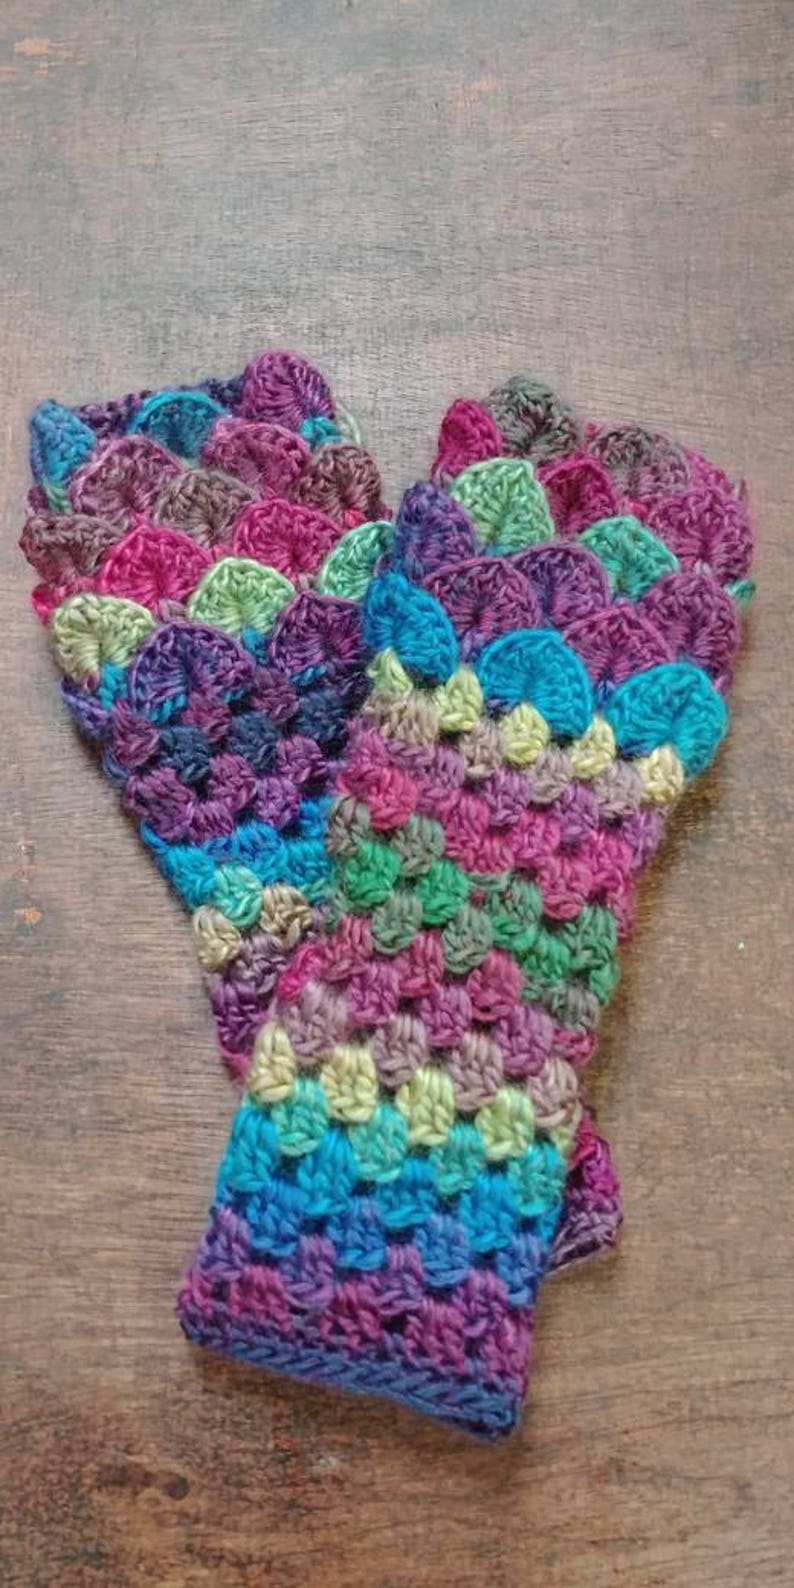 Dragonscale Gloves Mermaid Gloves Dragonscale Arm Warmers 15 - Stained Glass